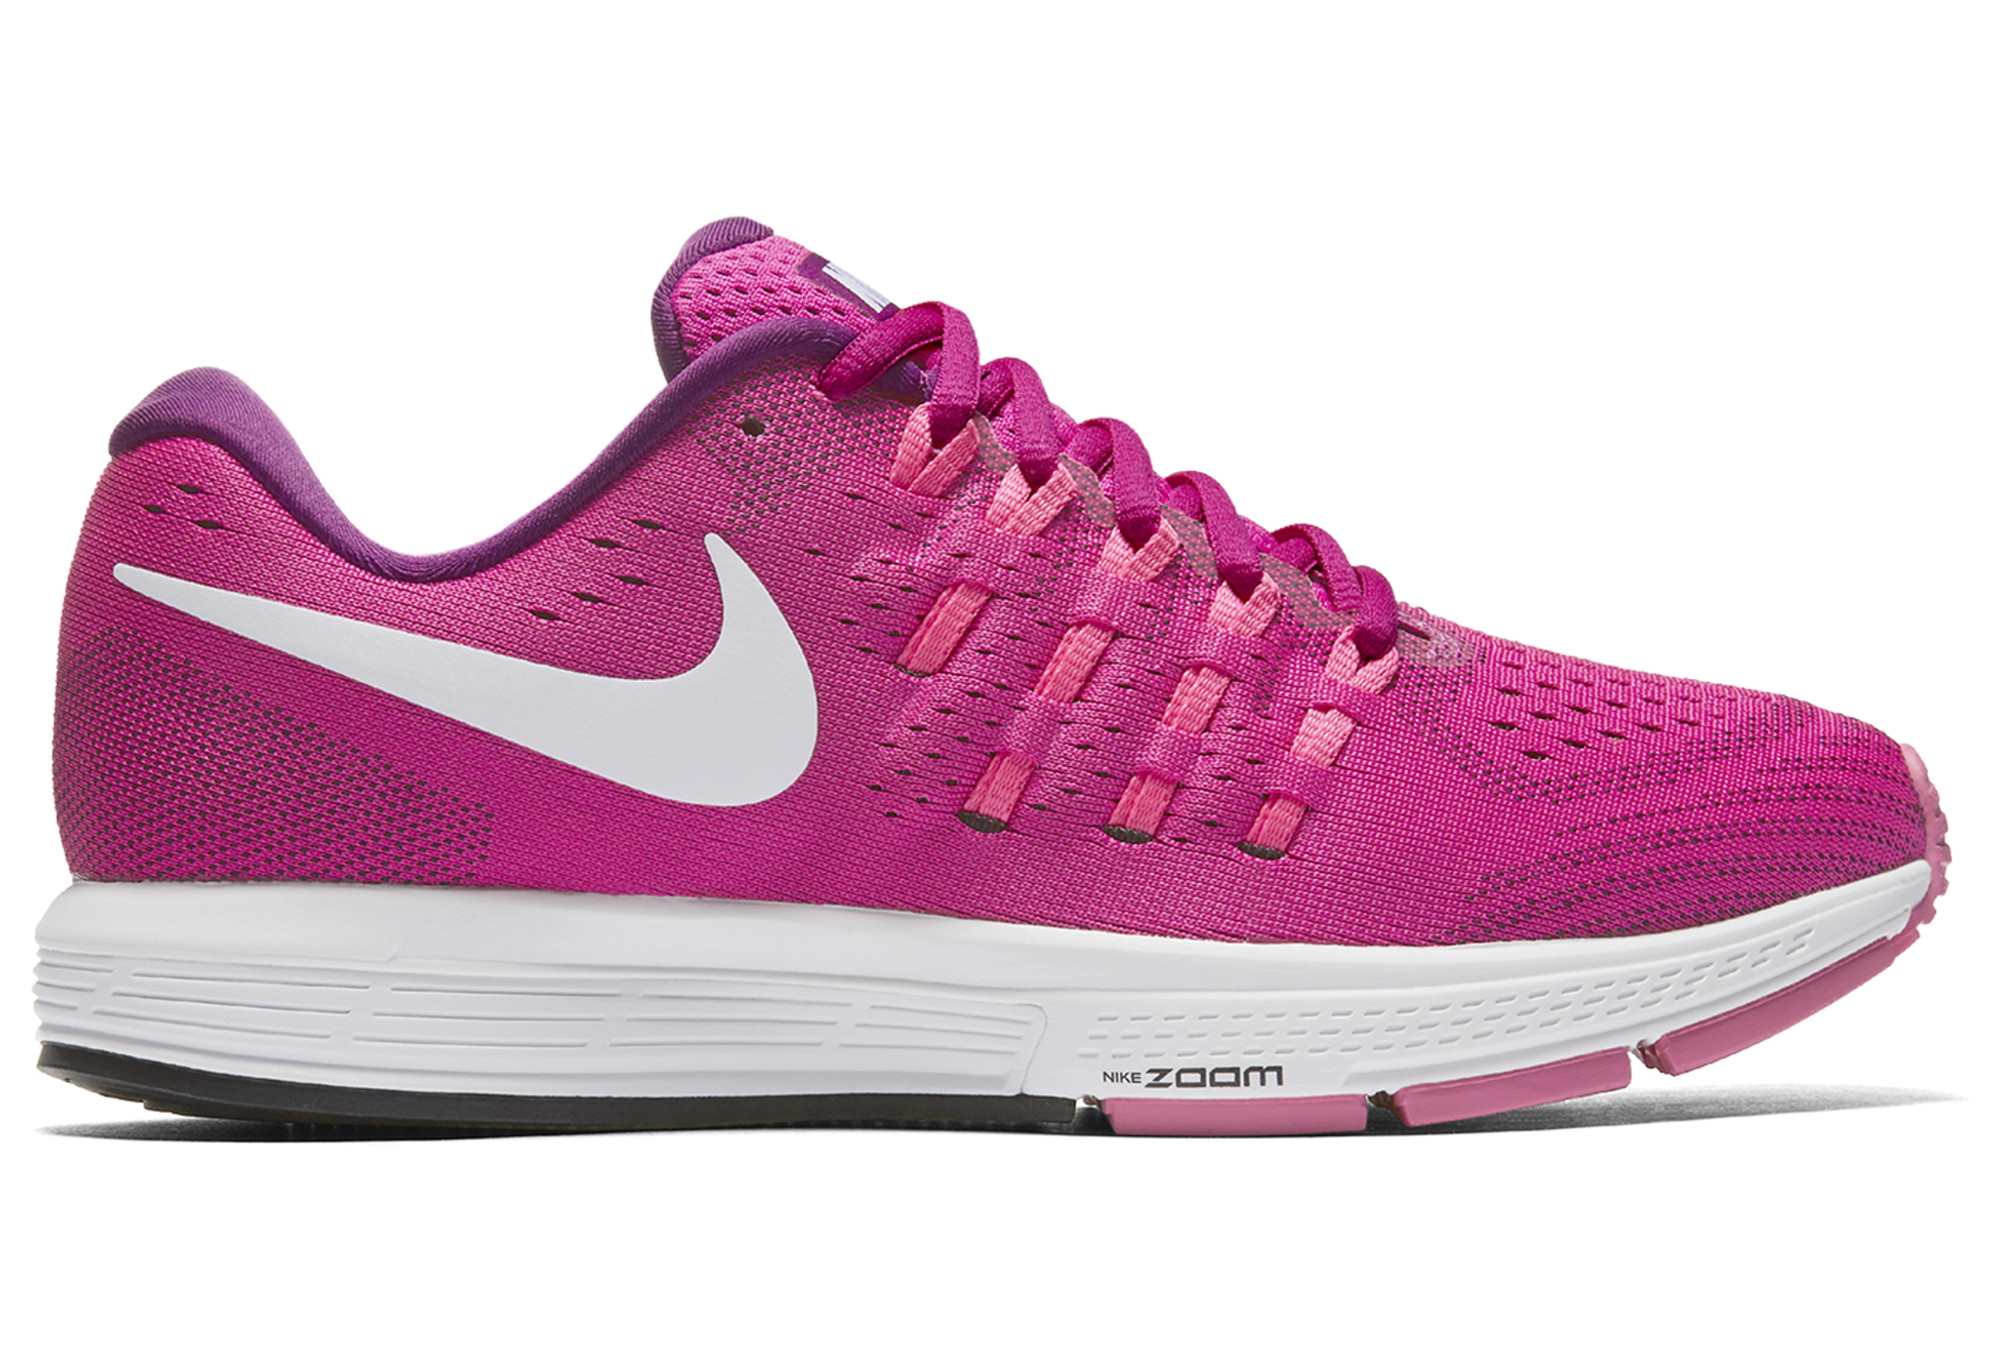 0679ddc8c9f NIKE Shoes AIR ZOOM VOMERO 11 Pink Women